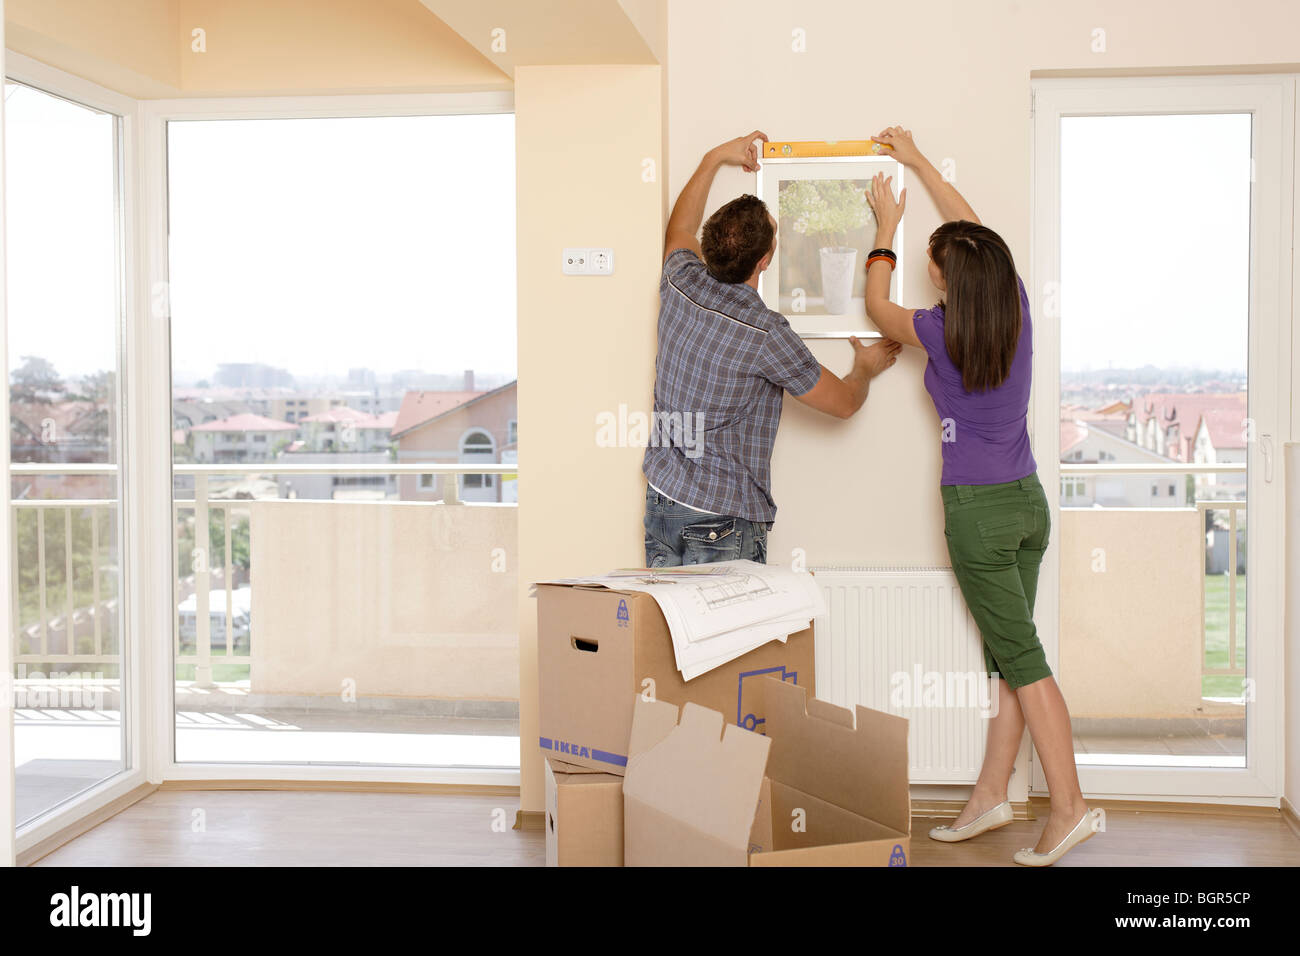 man and woman just moving in decorating a new apartment